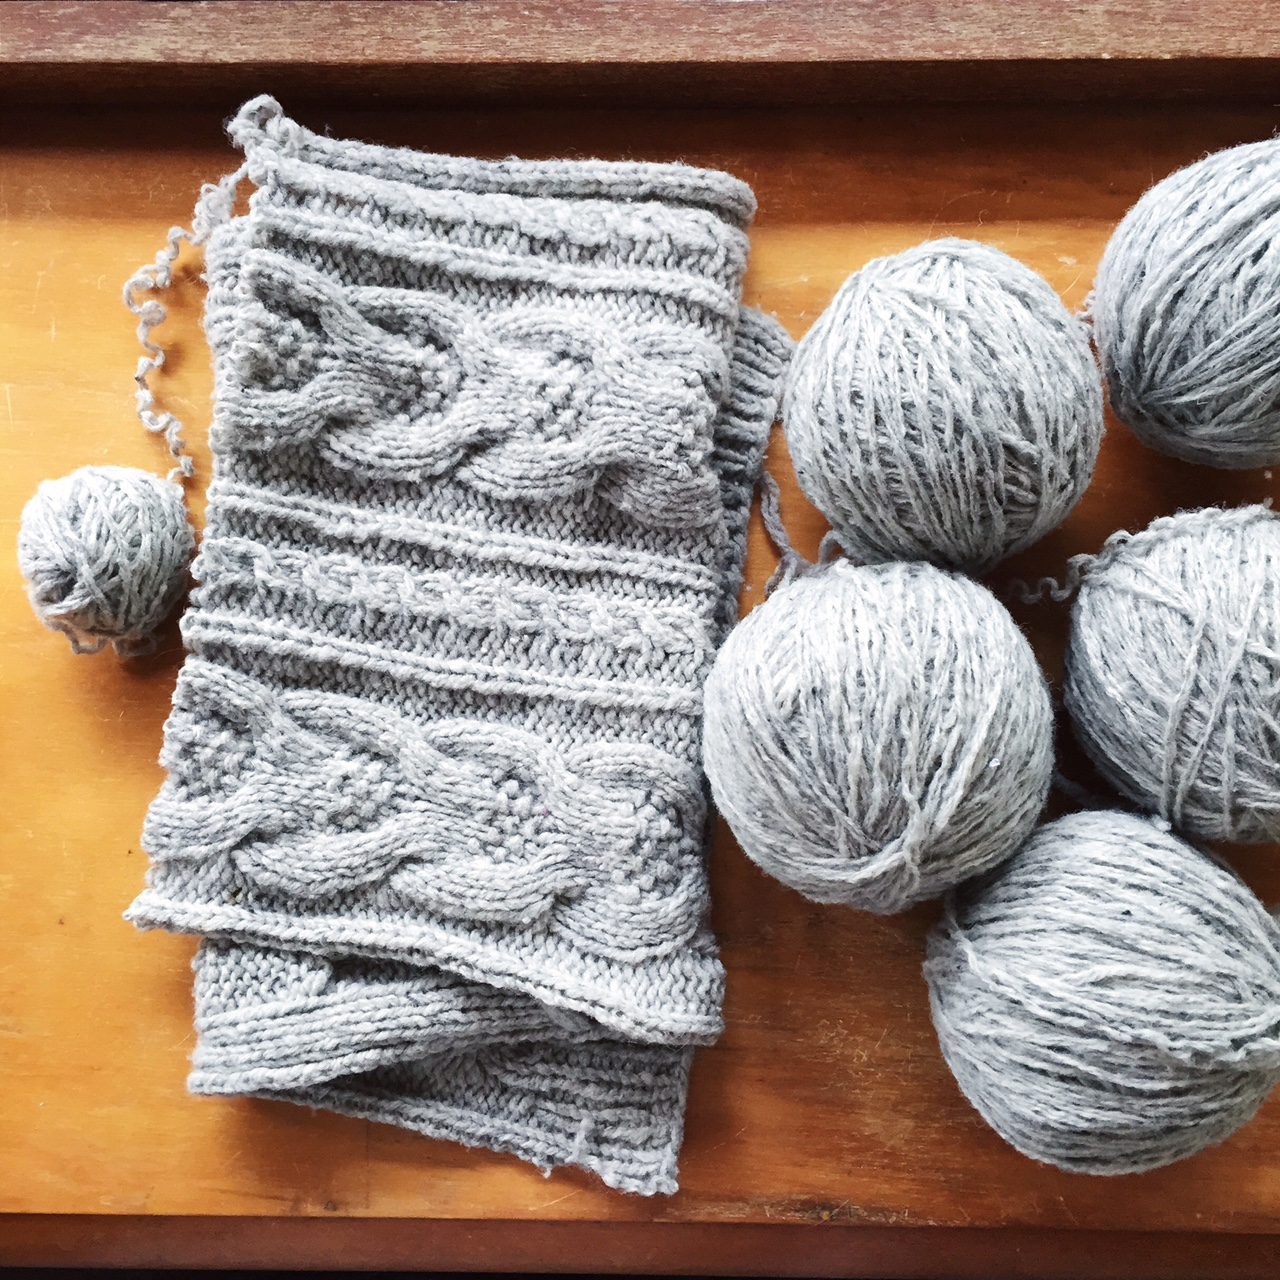 I've been shopping my own wardrobe to find yarn to harvest. It's got a bit addictive - to rip something that wasn't quite right and start the process of making it into something gorgeous. This yarn is now being turned into  Keel .